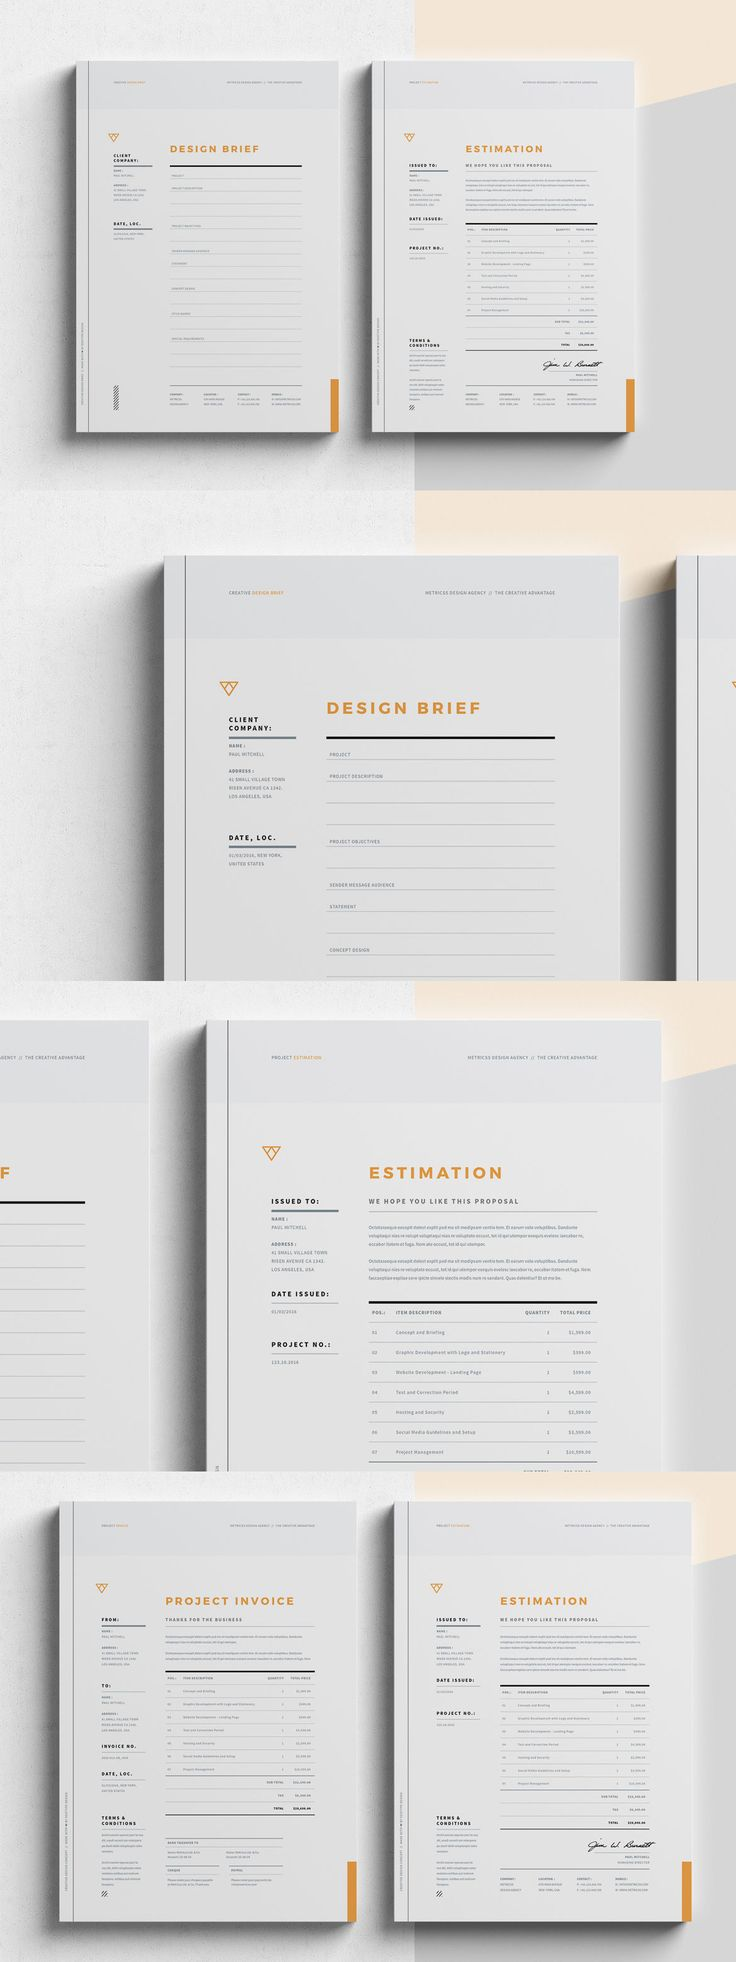 best ideas about invoice template invoice design brief estimation invoice templates graphic templates by egotype subscribe to envato elements for unlimited graphic templates s for a